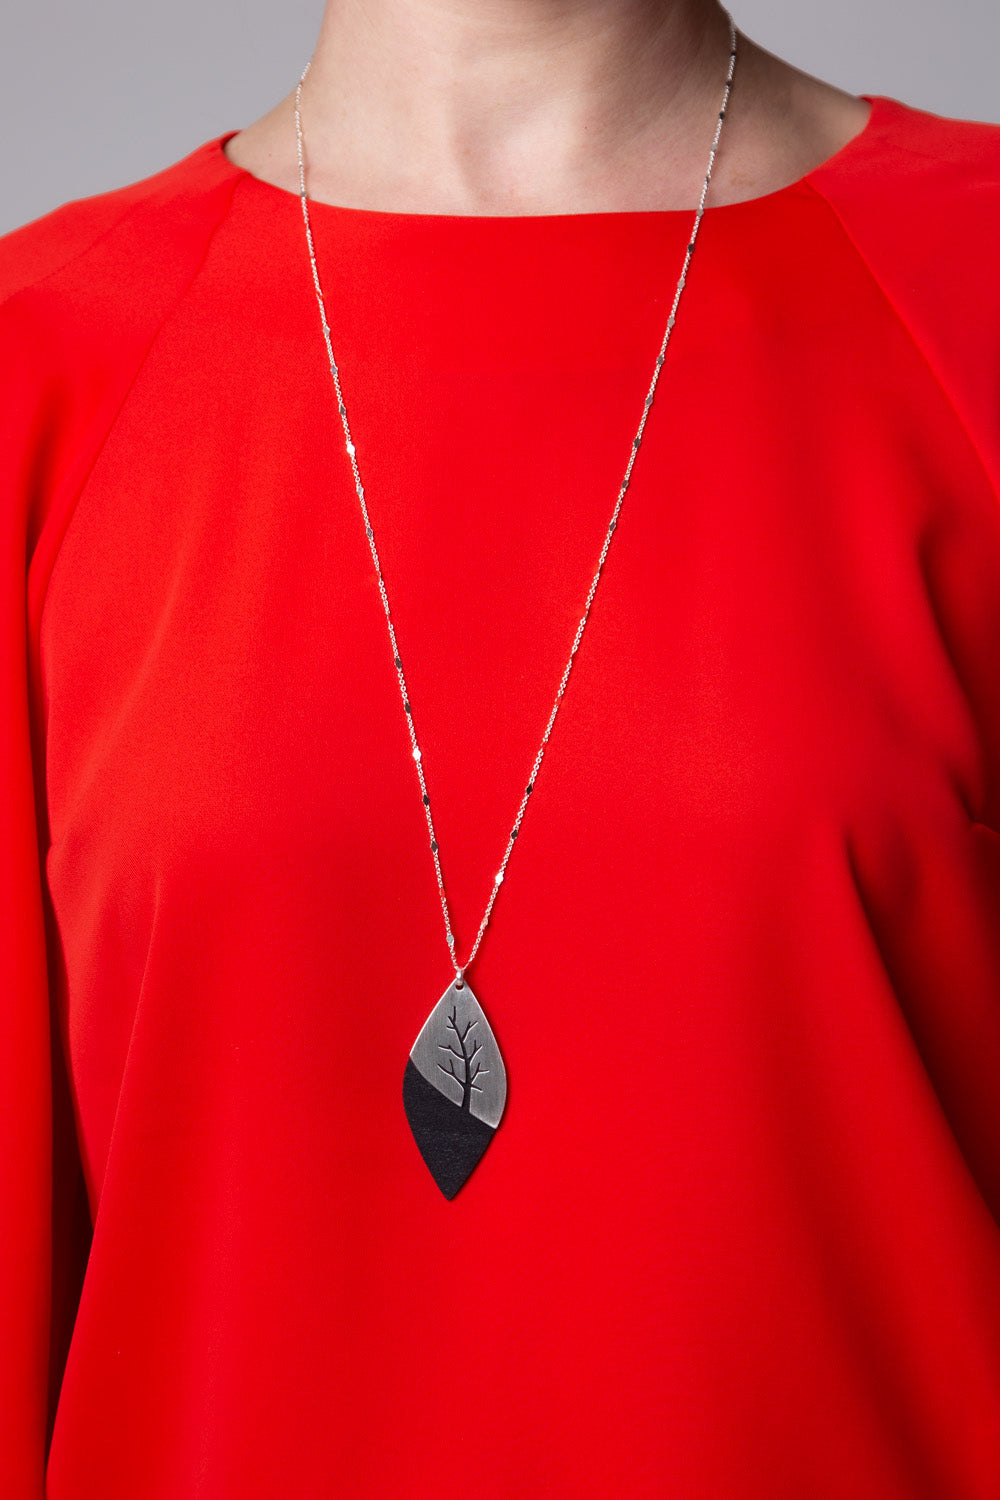 Type 4 Lone Hill Necklace